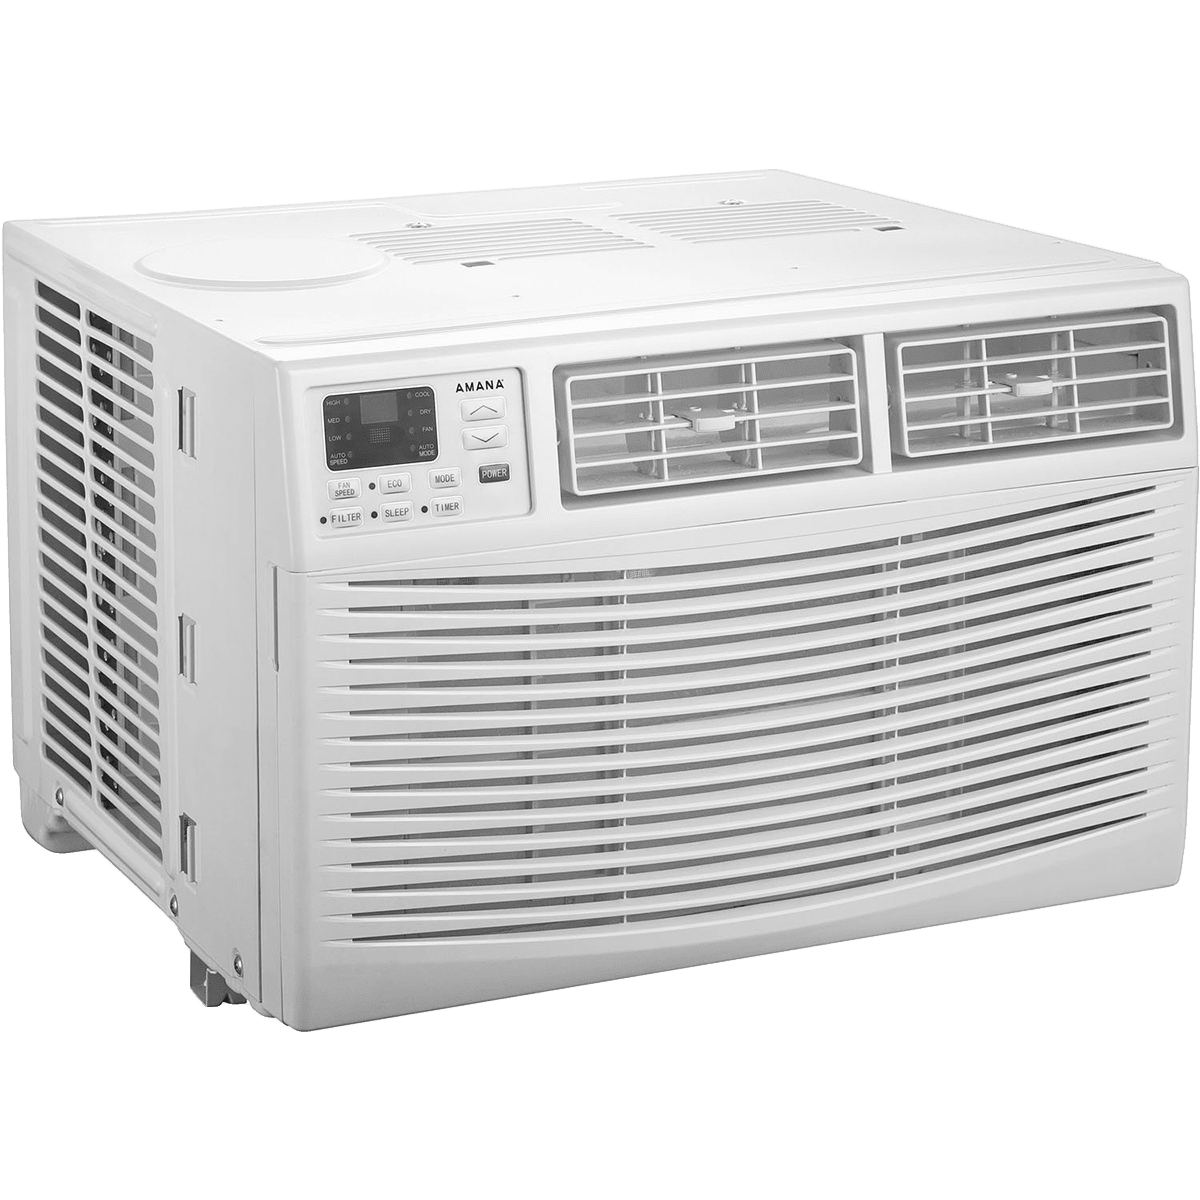 Amana 6000 BTU Window Air Conditioner with Electronic Controls – AMAP061BW